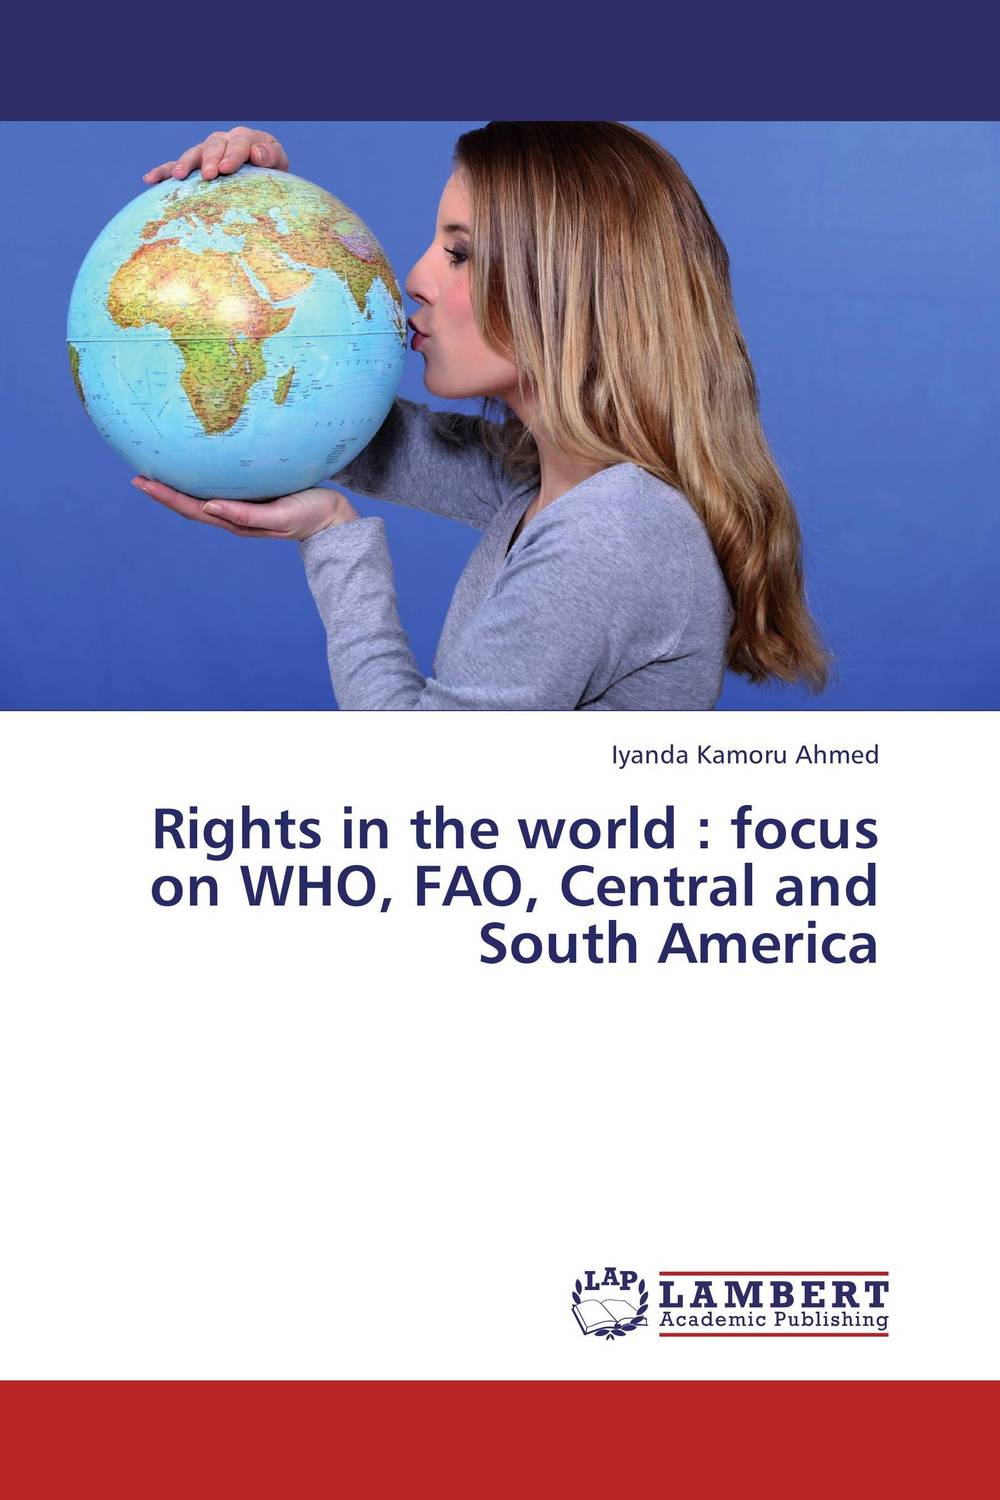 Rights in the world : focus on WHO, FAO, Central  and South America the salmon who dared to leap higher